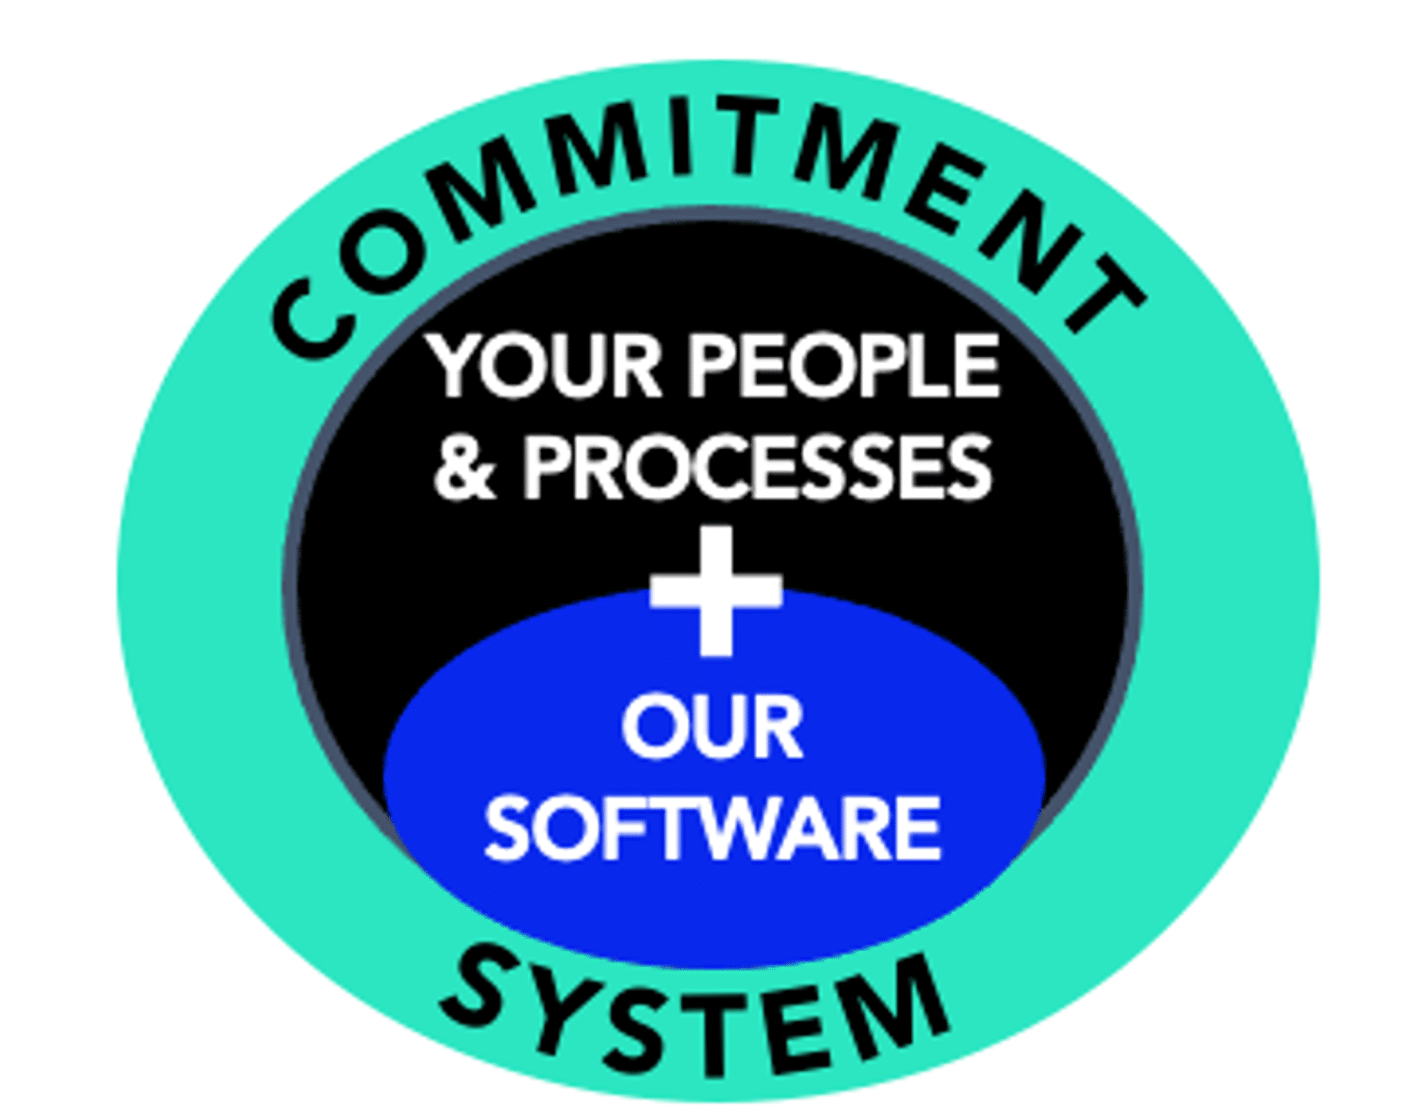 Commitment System